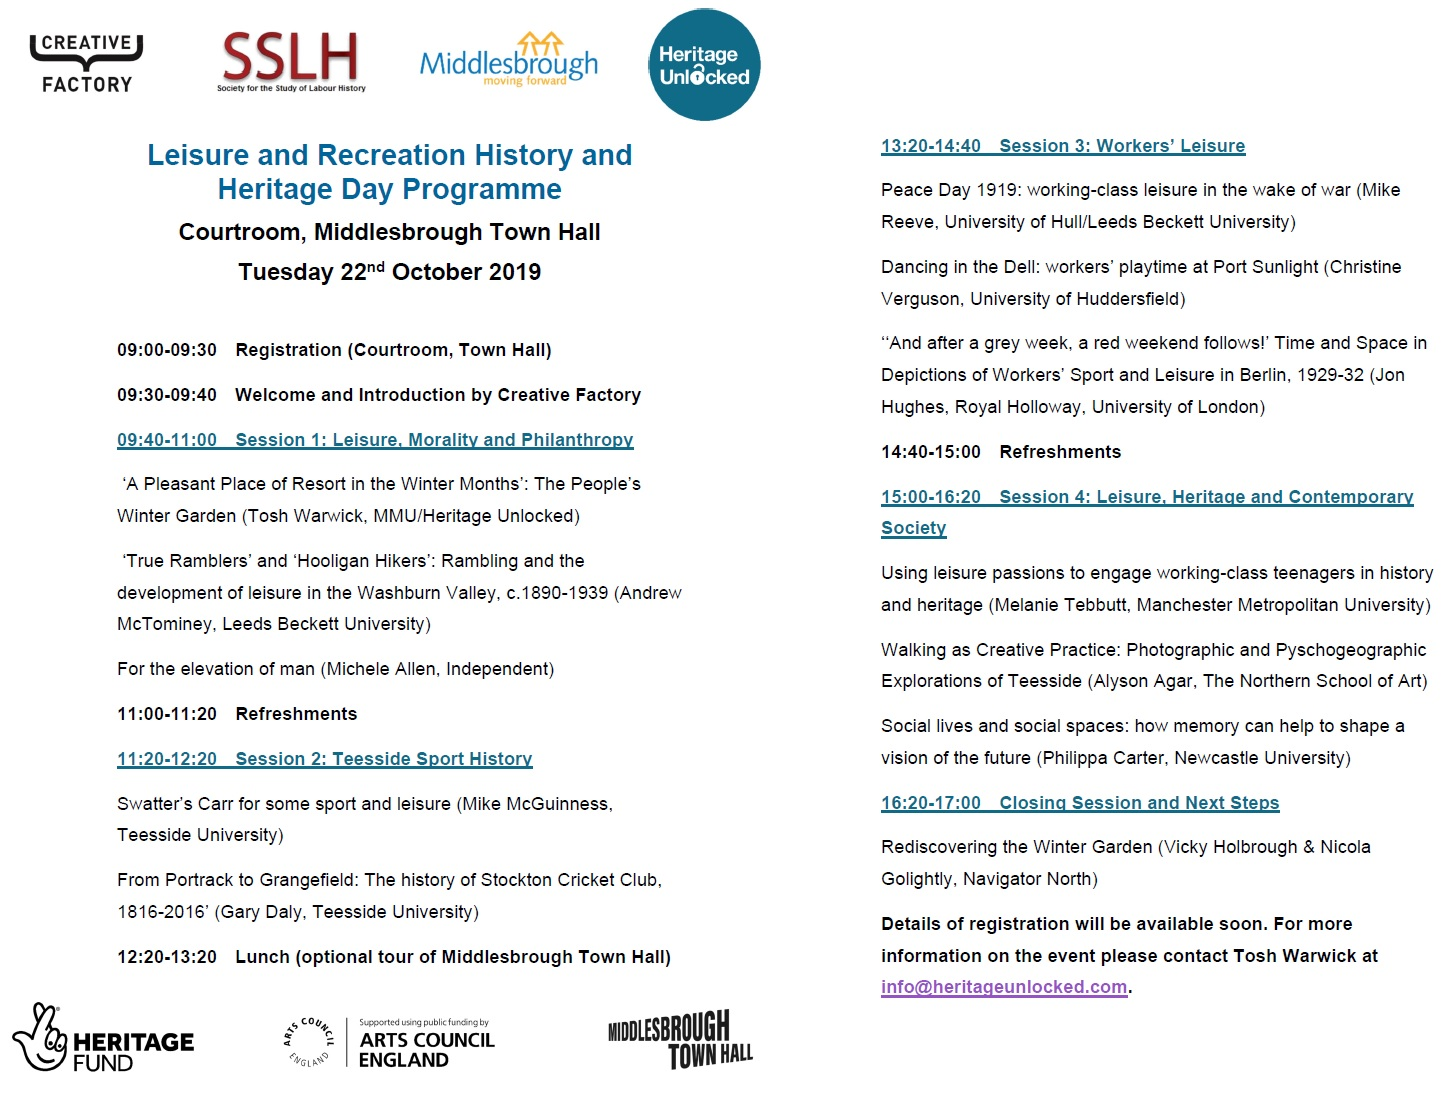 Leisure and Recreation History and Heritage Day Programme.jpg